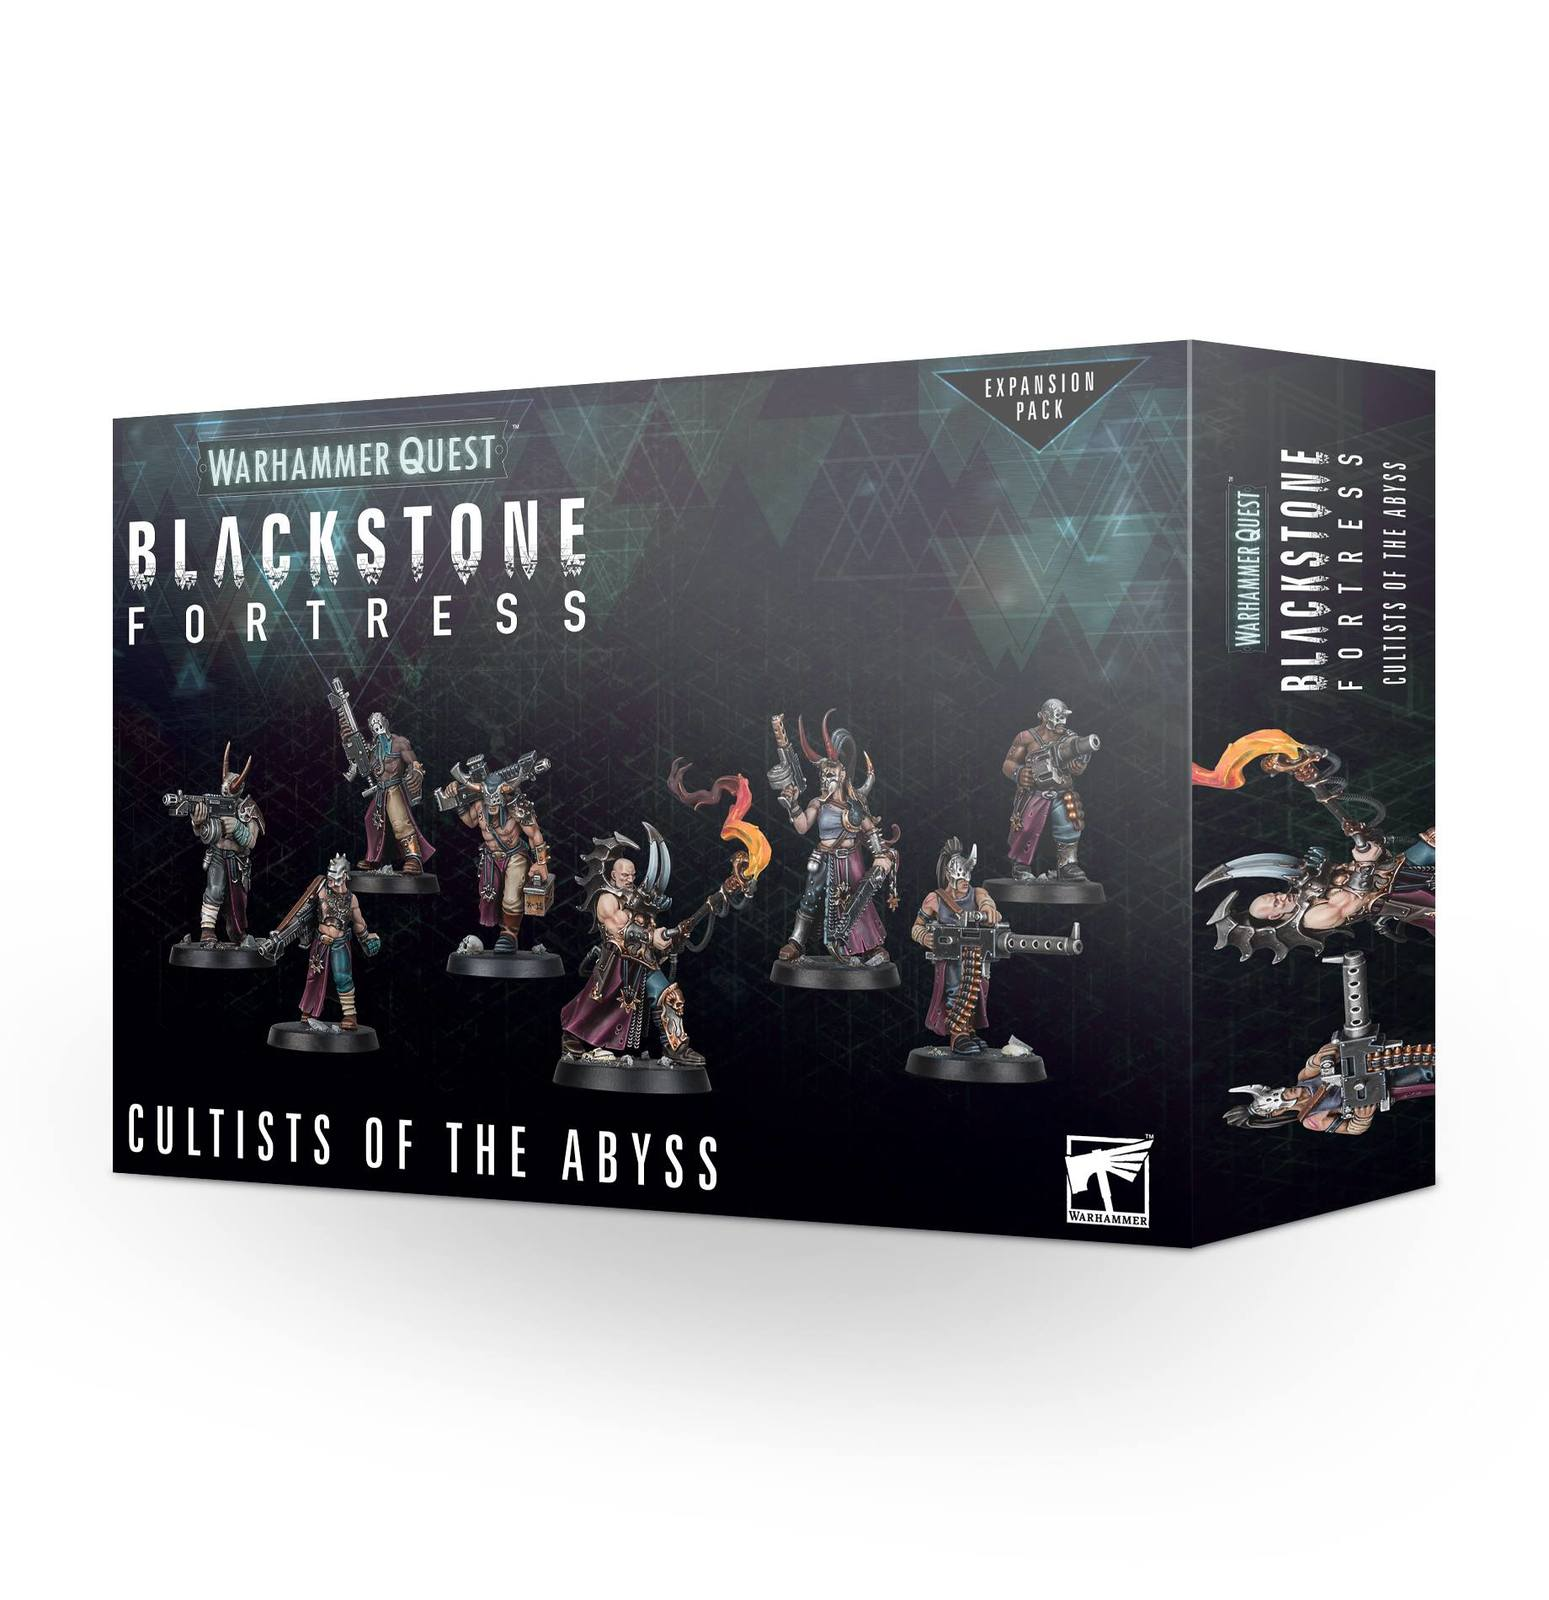 Blackstone Fortress: Cultists of the Abyss image